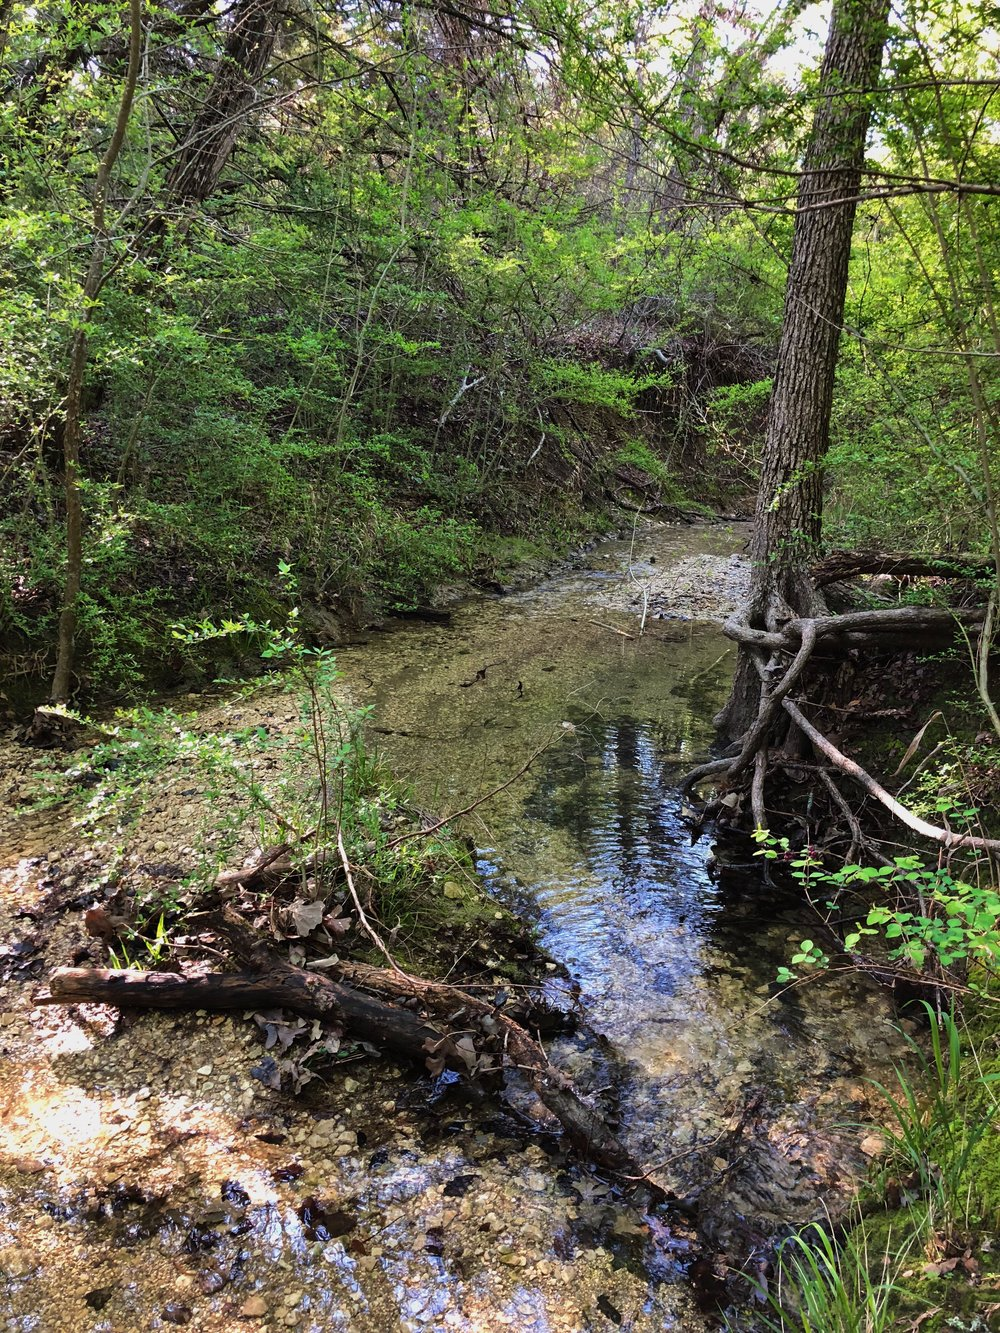 Many creeks snake their way between the hills.